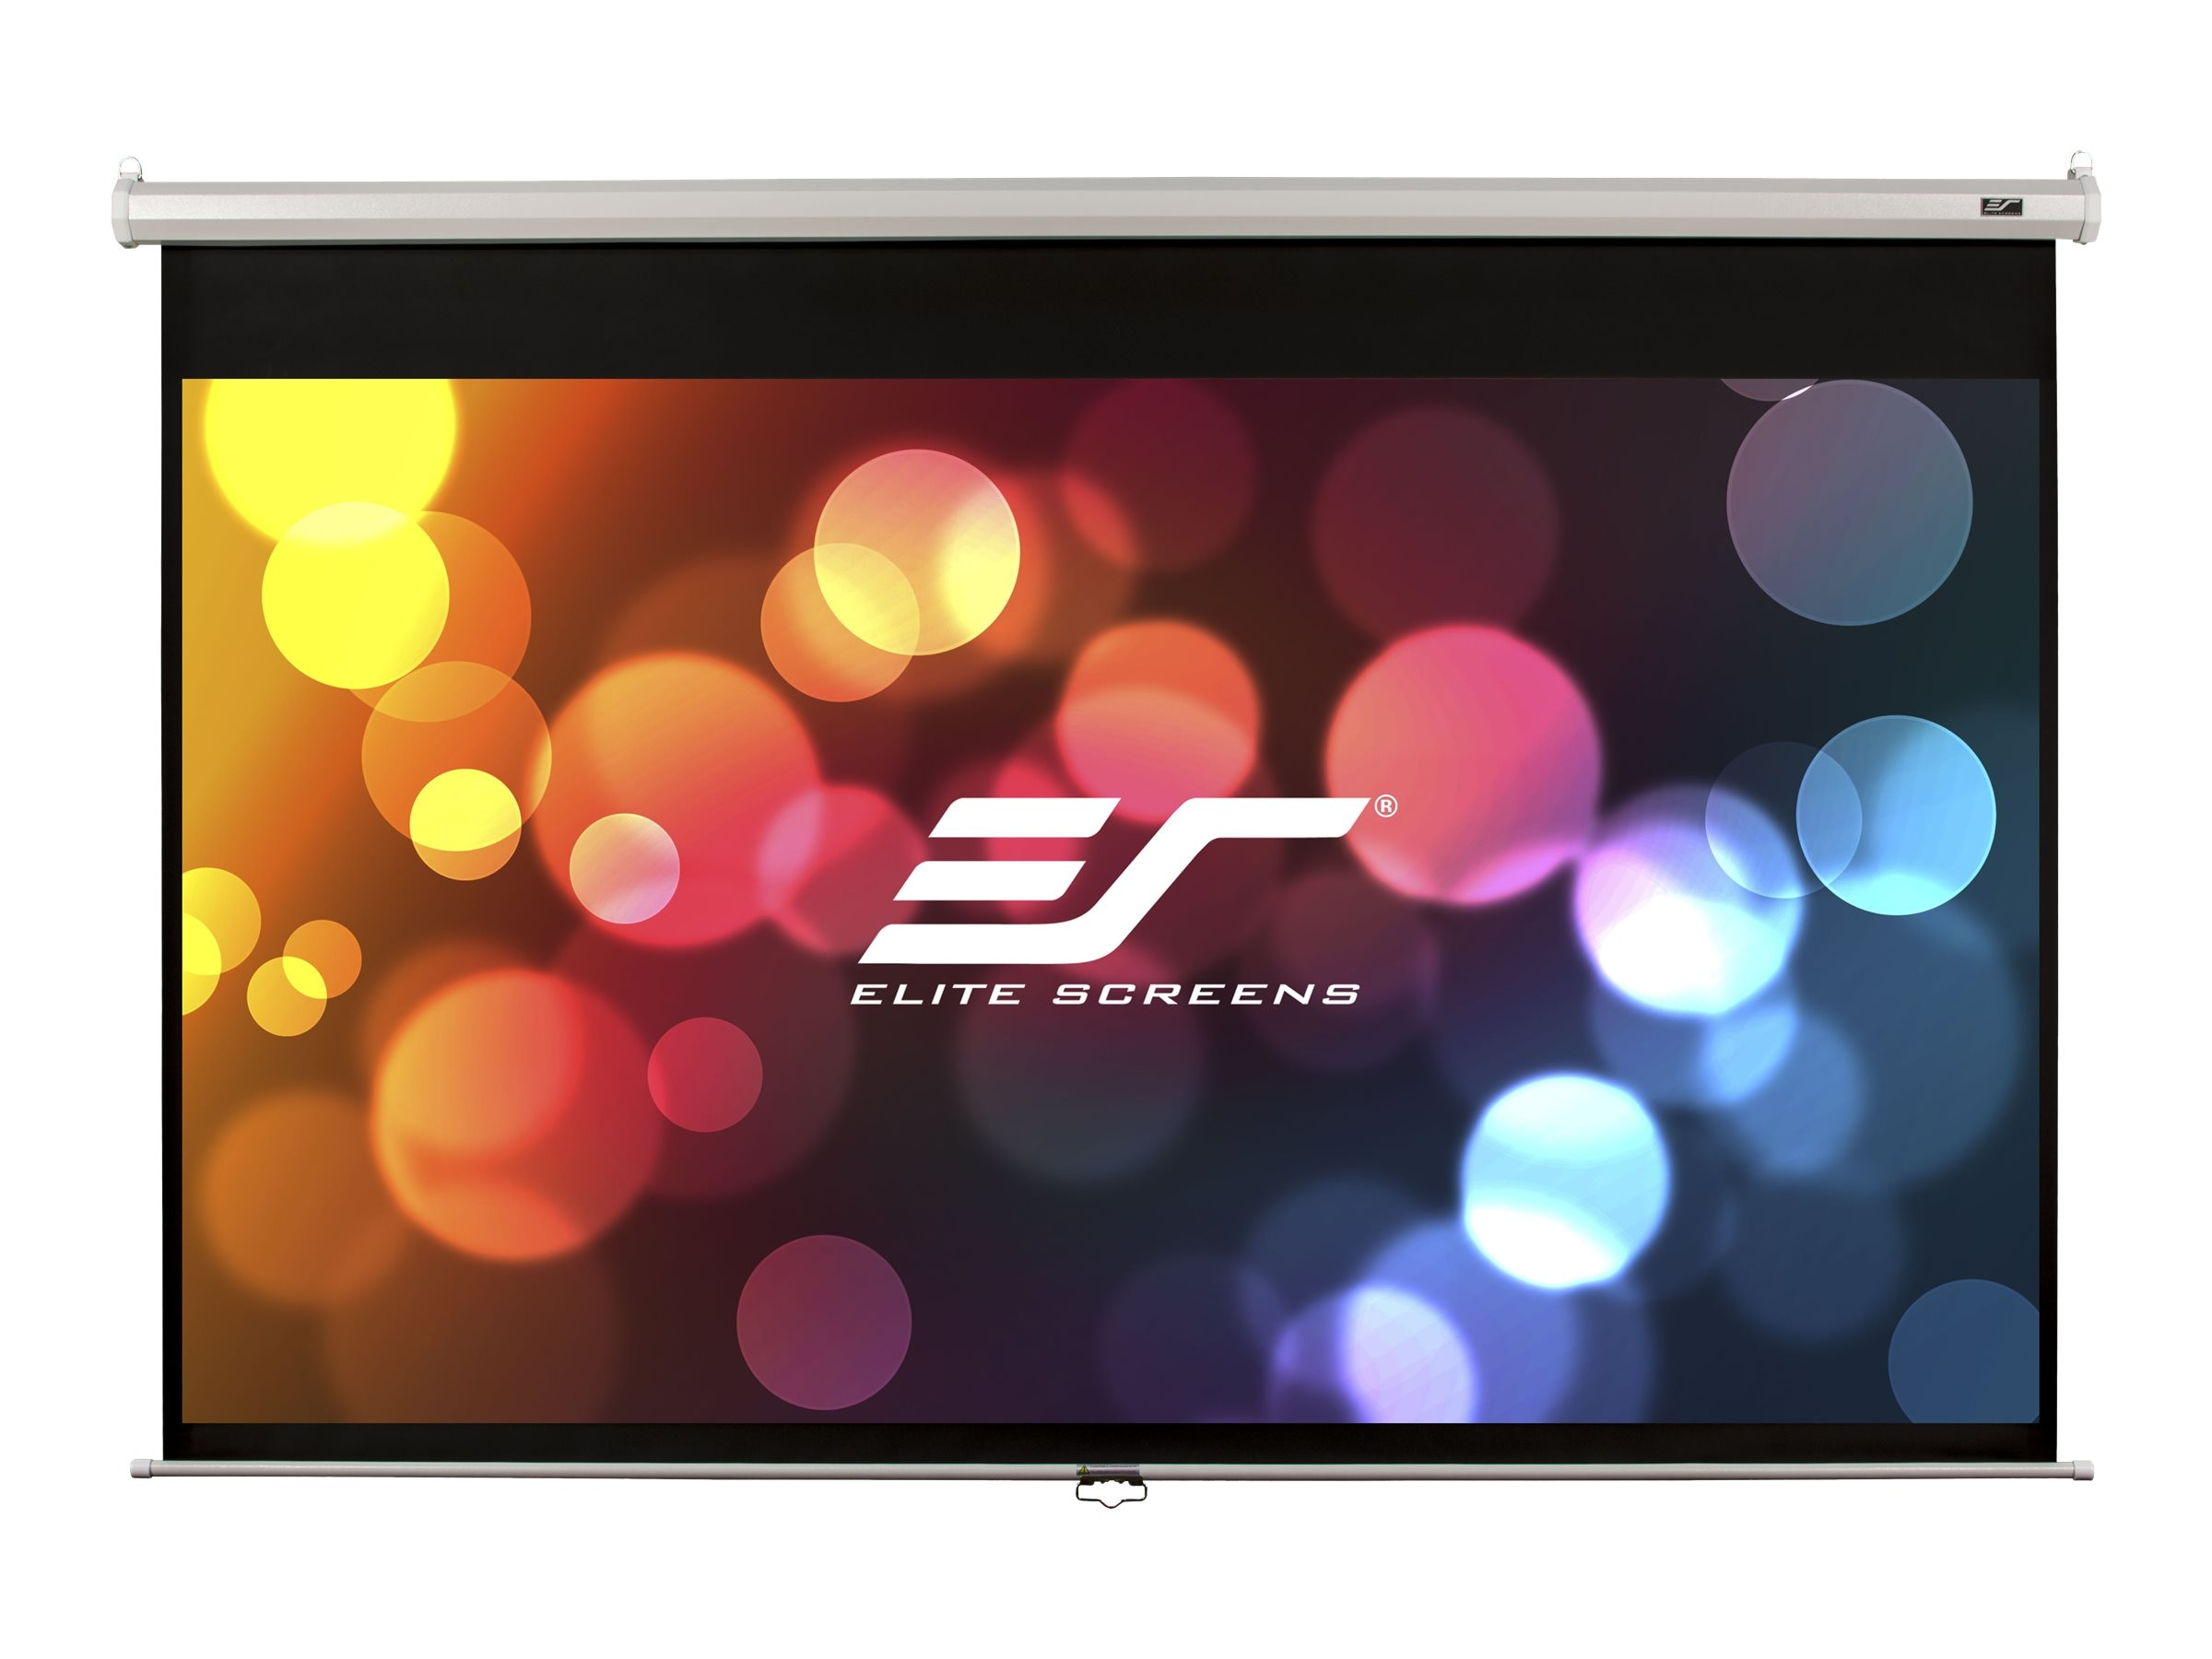 Elite Manual Series Projection Screen with White Case, Matte White, 1:1, 99in, M99NWS1, 6772714, Projector Screens